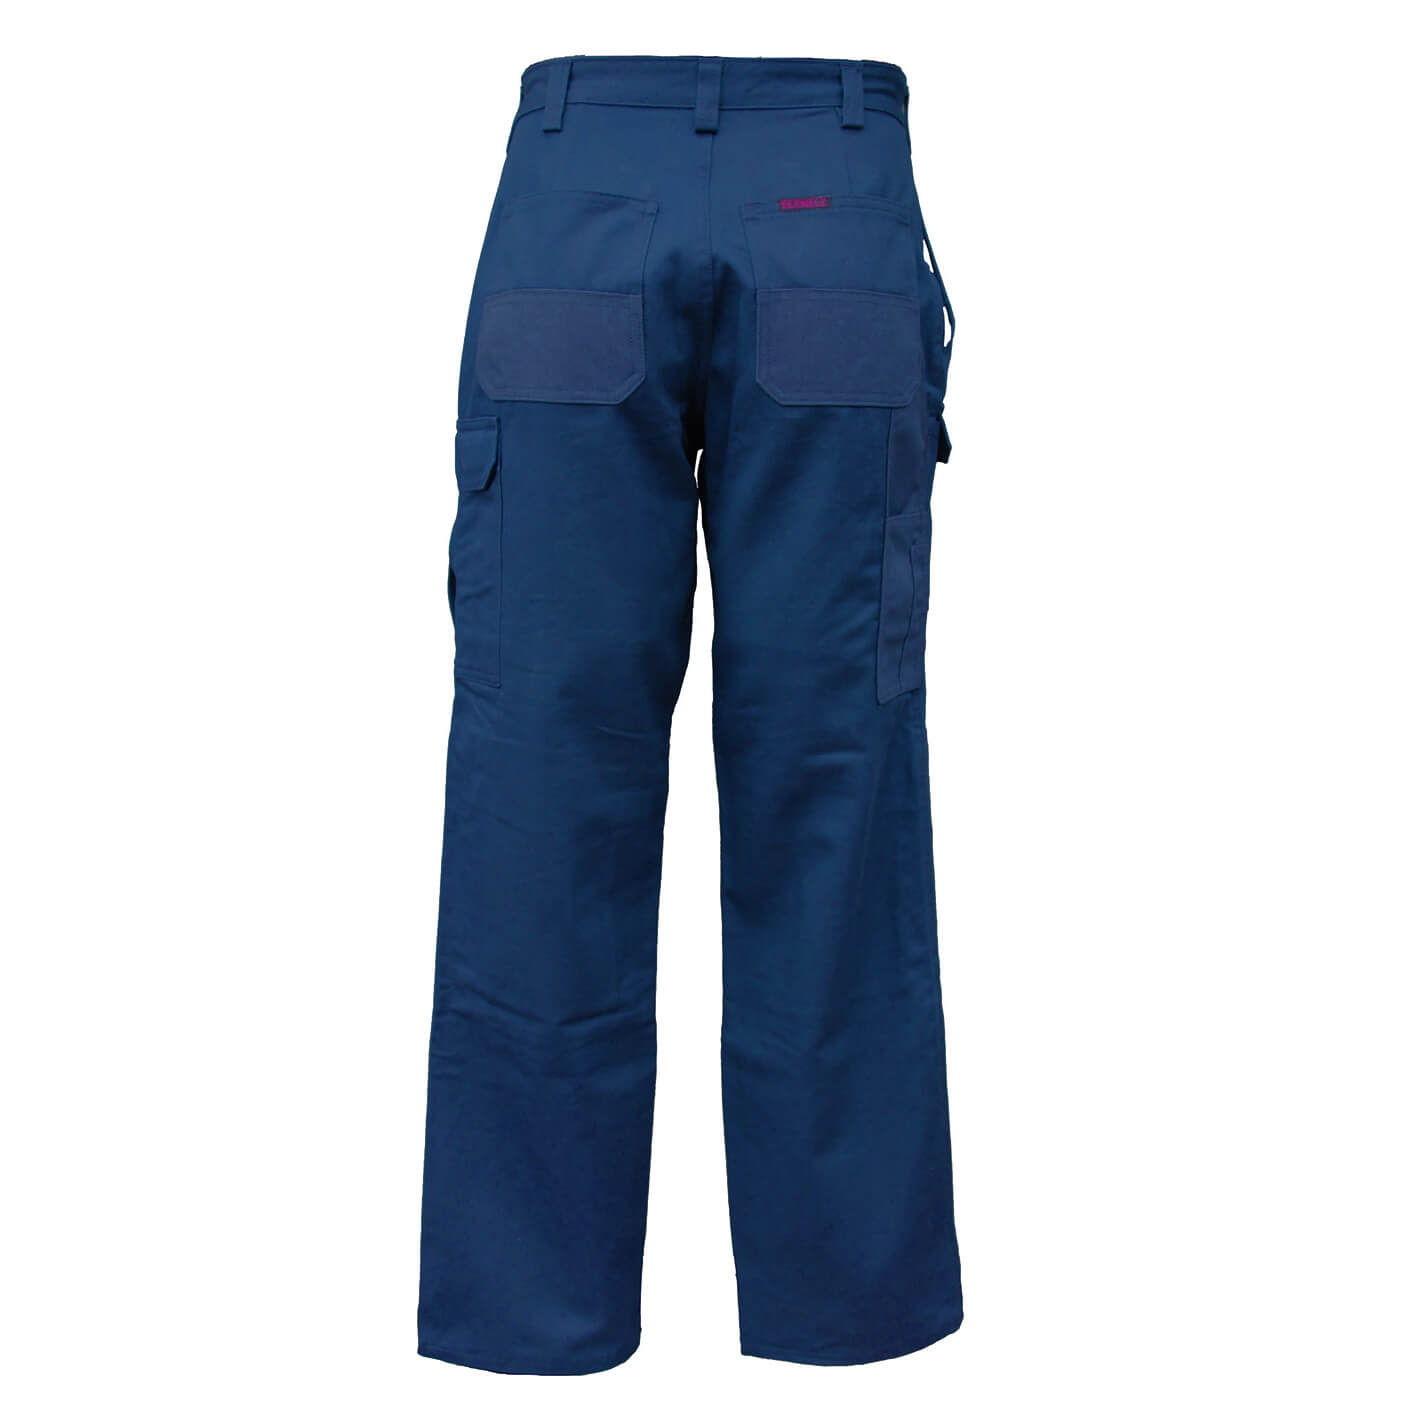 Eezneez Trousers Cushioned Knees Navy Back